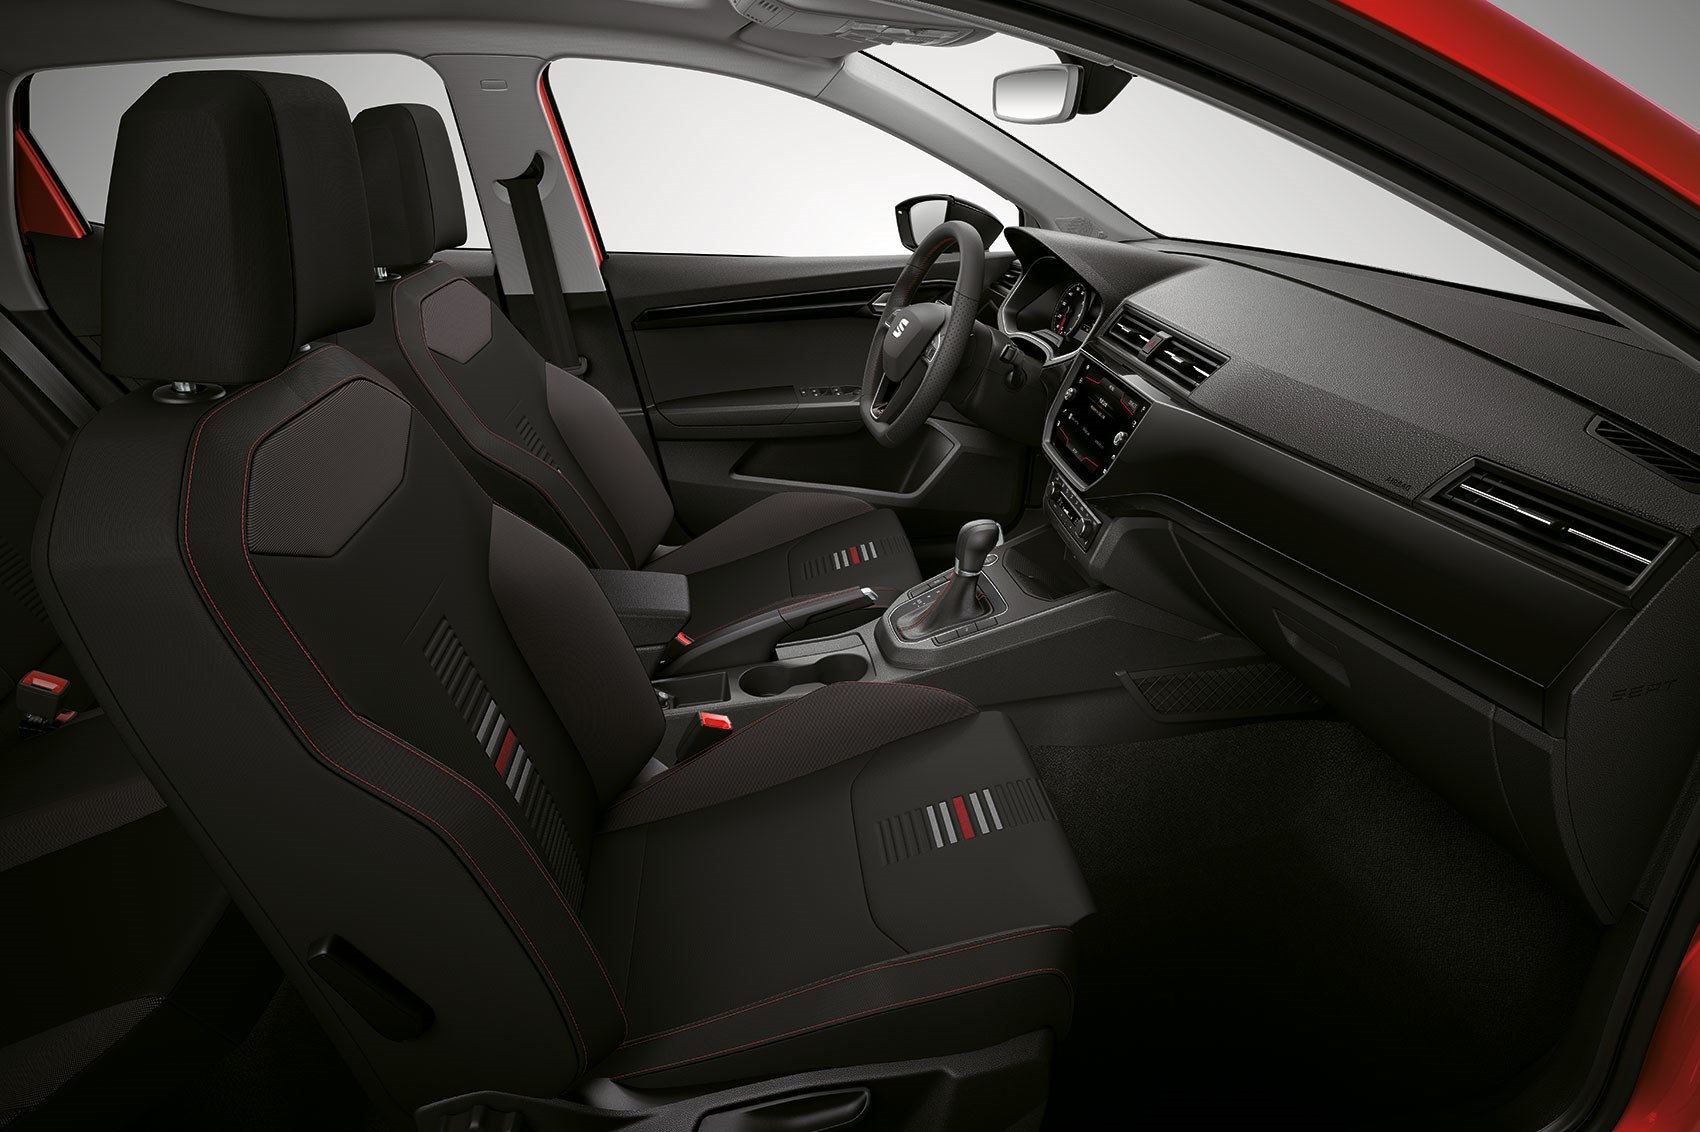 new seat ibiza revealed a little leon for 2017 by car. Black Bedroom Furniture Sets. Home Design Ideas